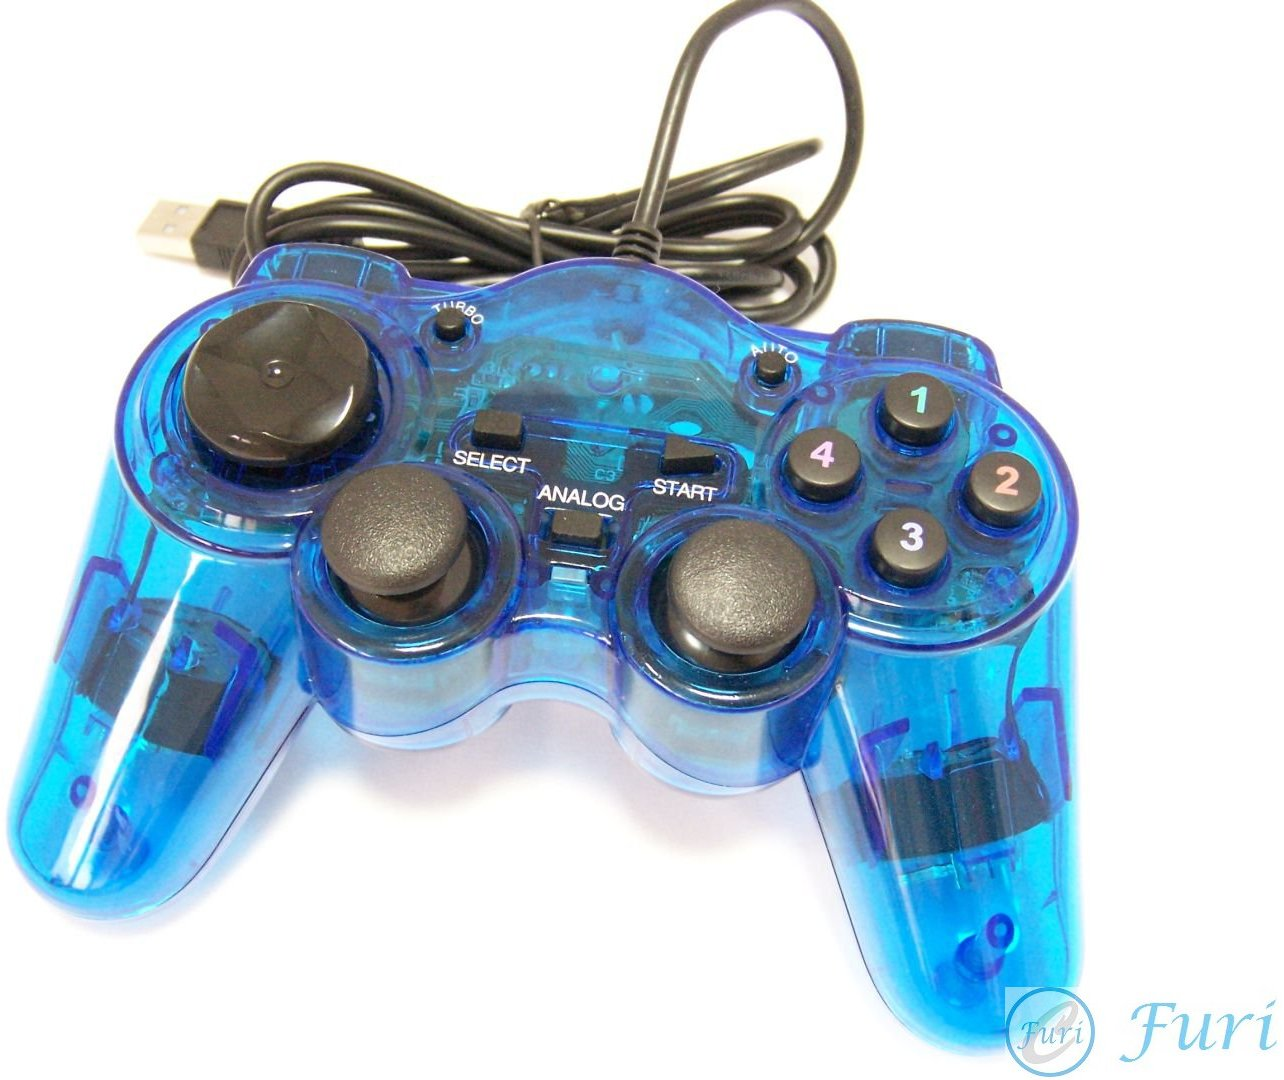 Blue Arcade Joystick USB 2.0 Game Pad Controller for Pc Products